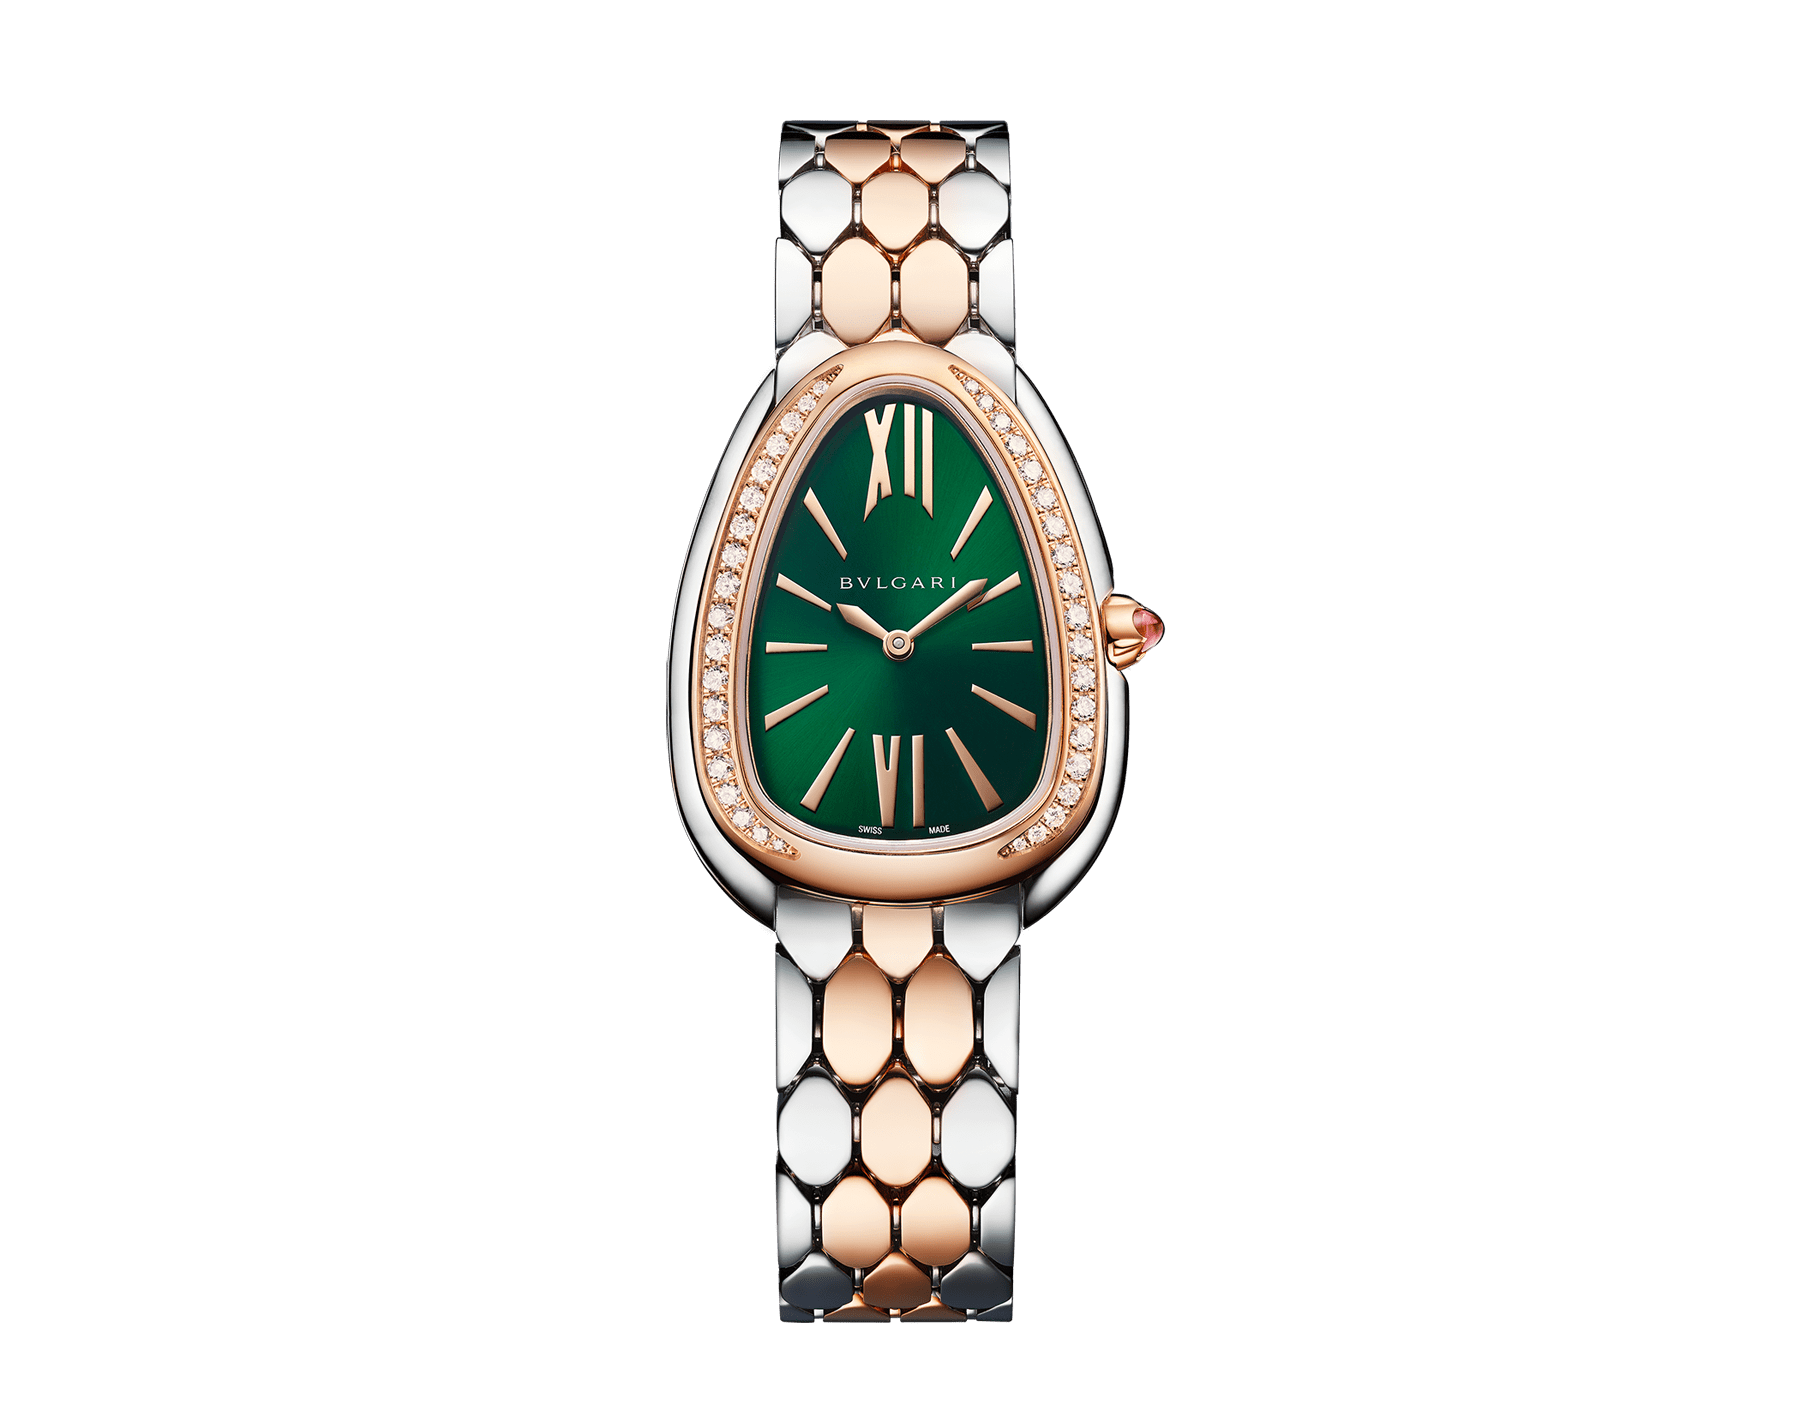 Serpenti Seduttori watch with stainless steel case, 18 kt rose gold bezel set with 38 round brilliant-cut diamonds (about 0.39 ct), green dial and 18 kt rose gold and stainless steel bracelet. Size 165 mm. Water-resistant up to 30 meters. Special Edition exclusive to United Kingdom and Middle East 103526 image 1